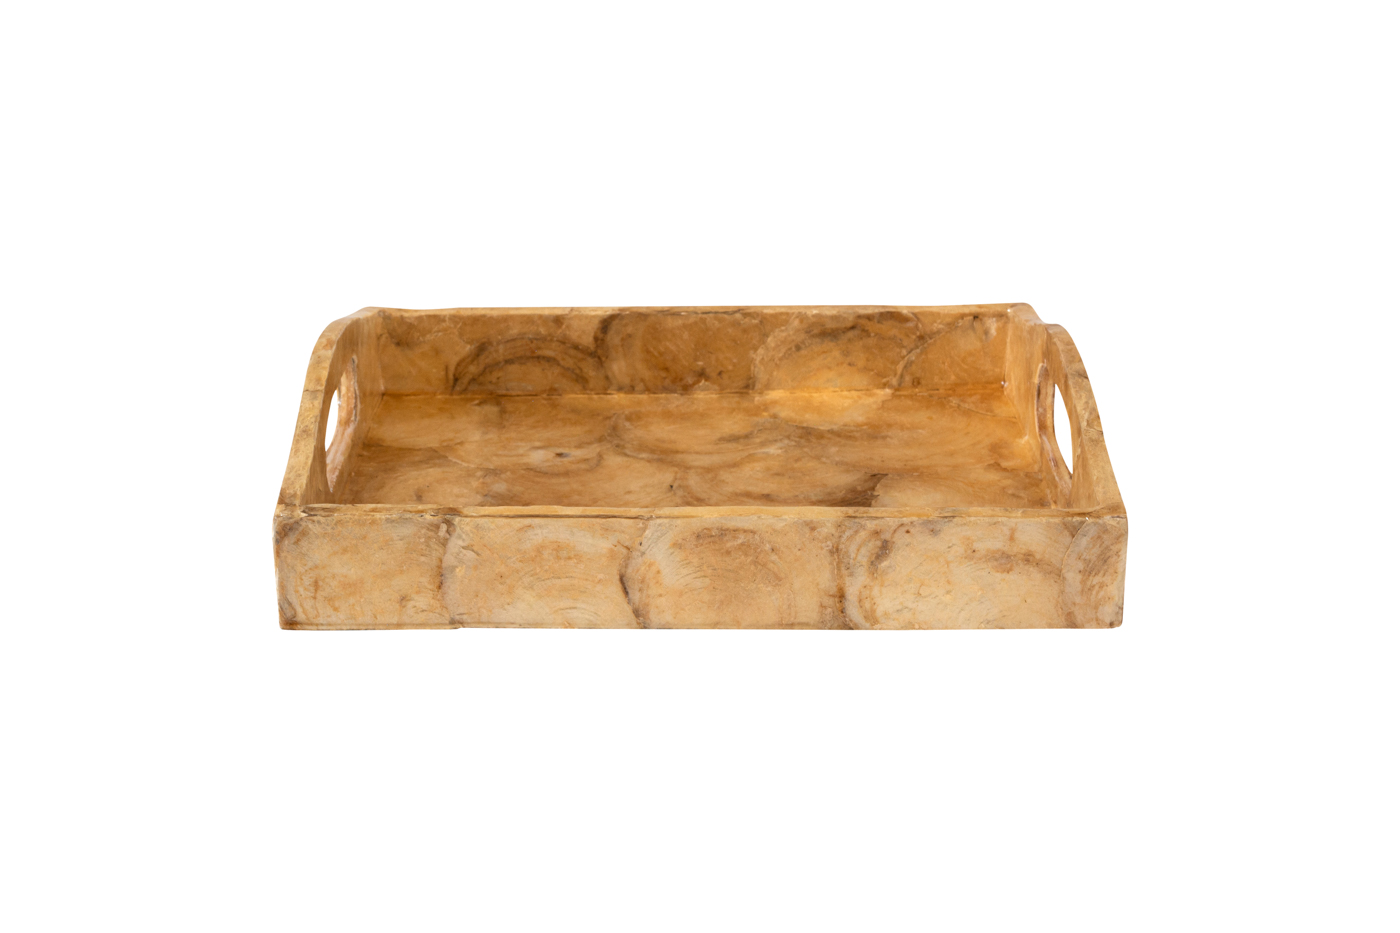 Rectangular wooden tray covered with dark brown mother-of-pearl